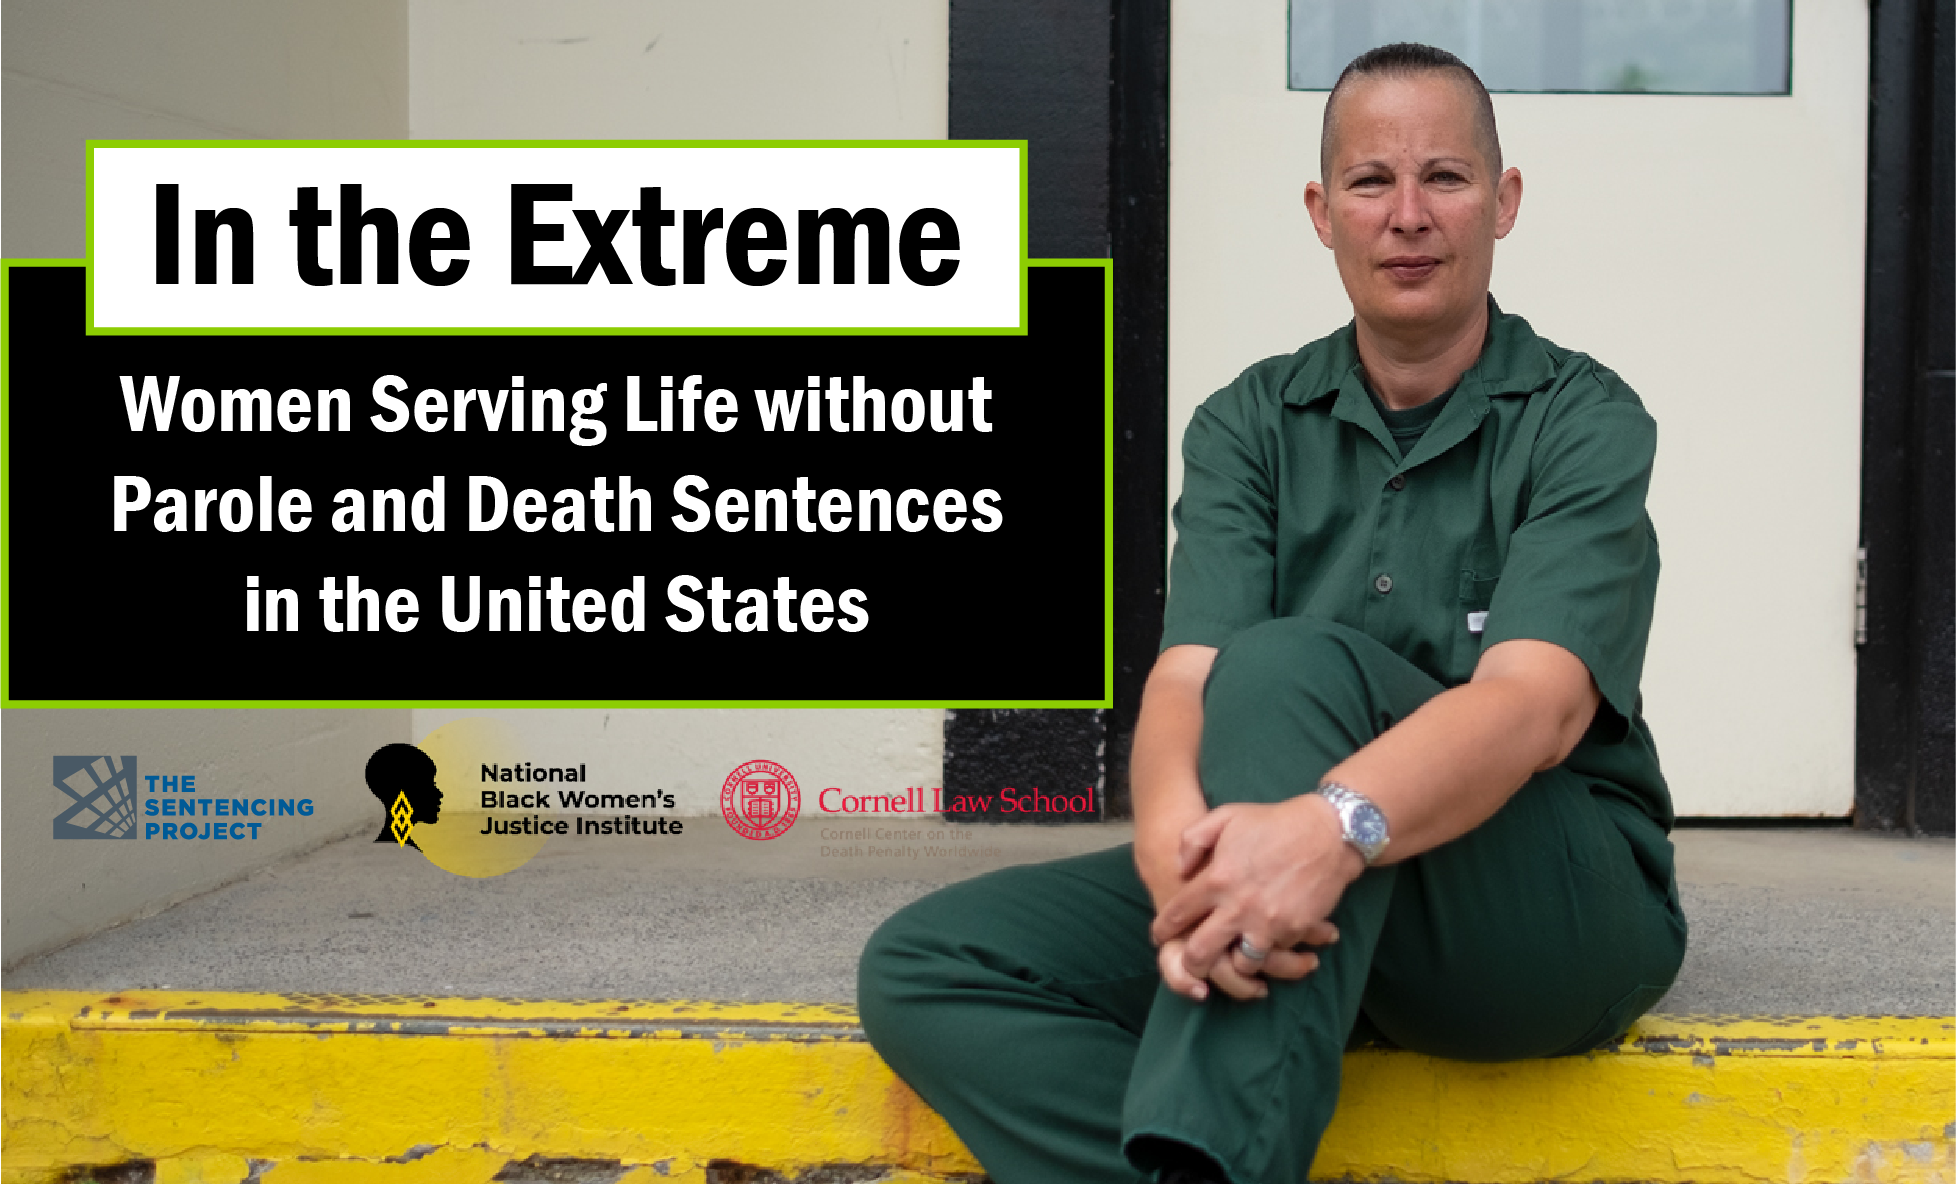 In the Extreme: Women Serving Life Without Parole and Death Sentences in the United States